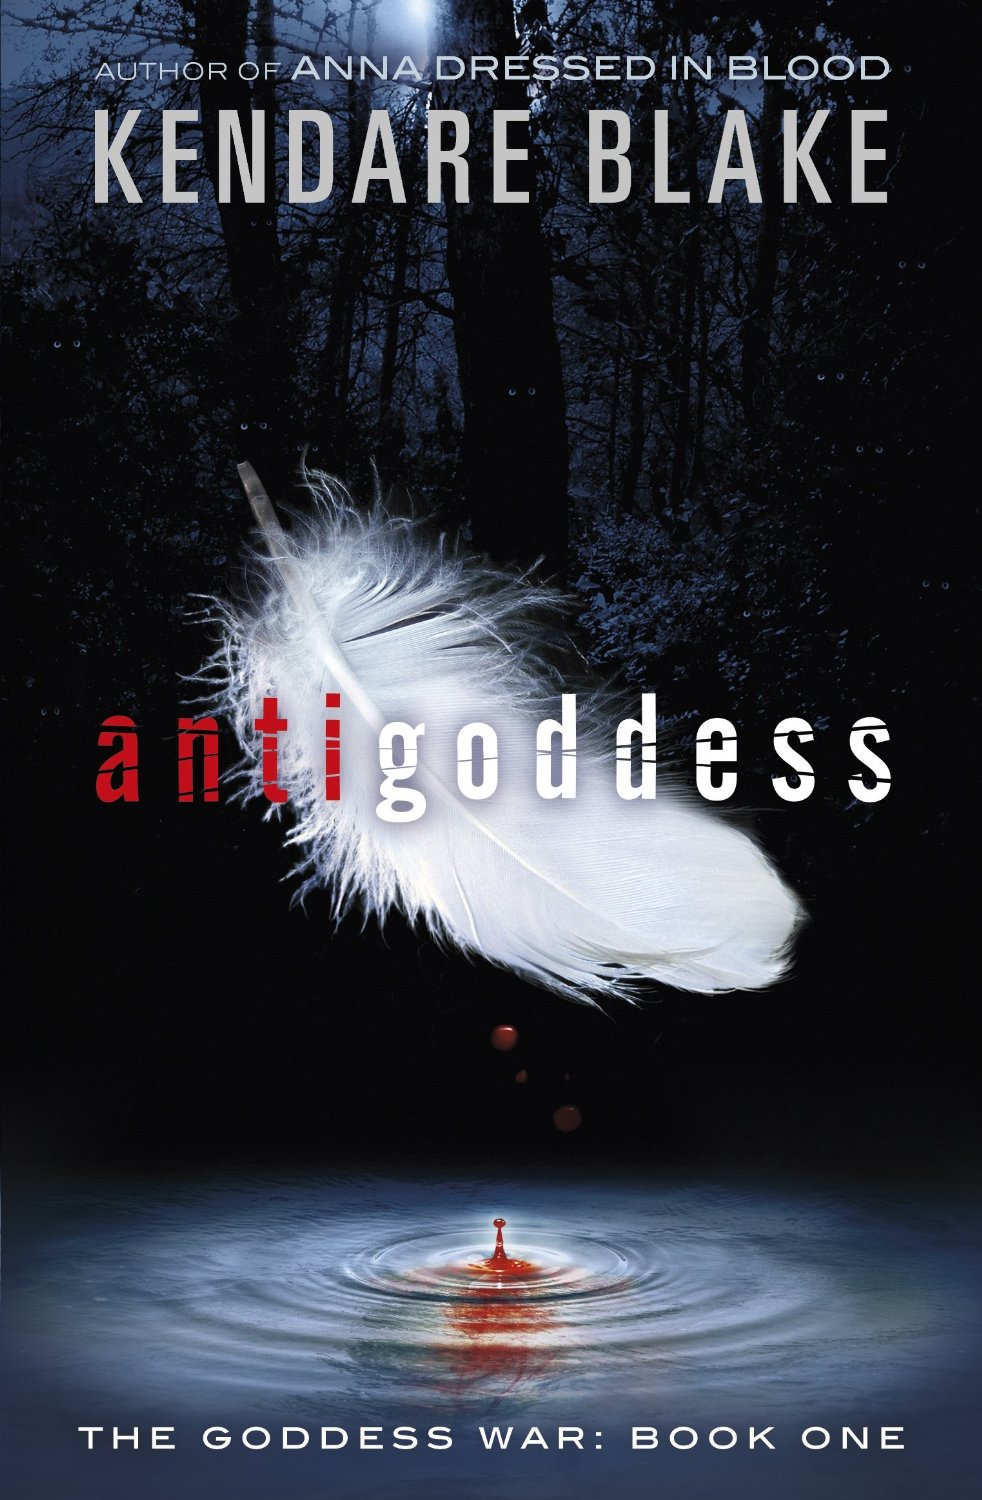 Antigoddess by Kendare Blake